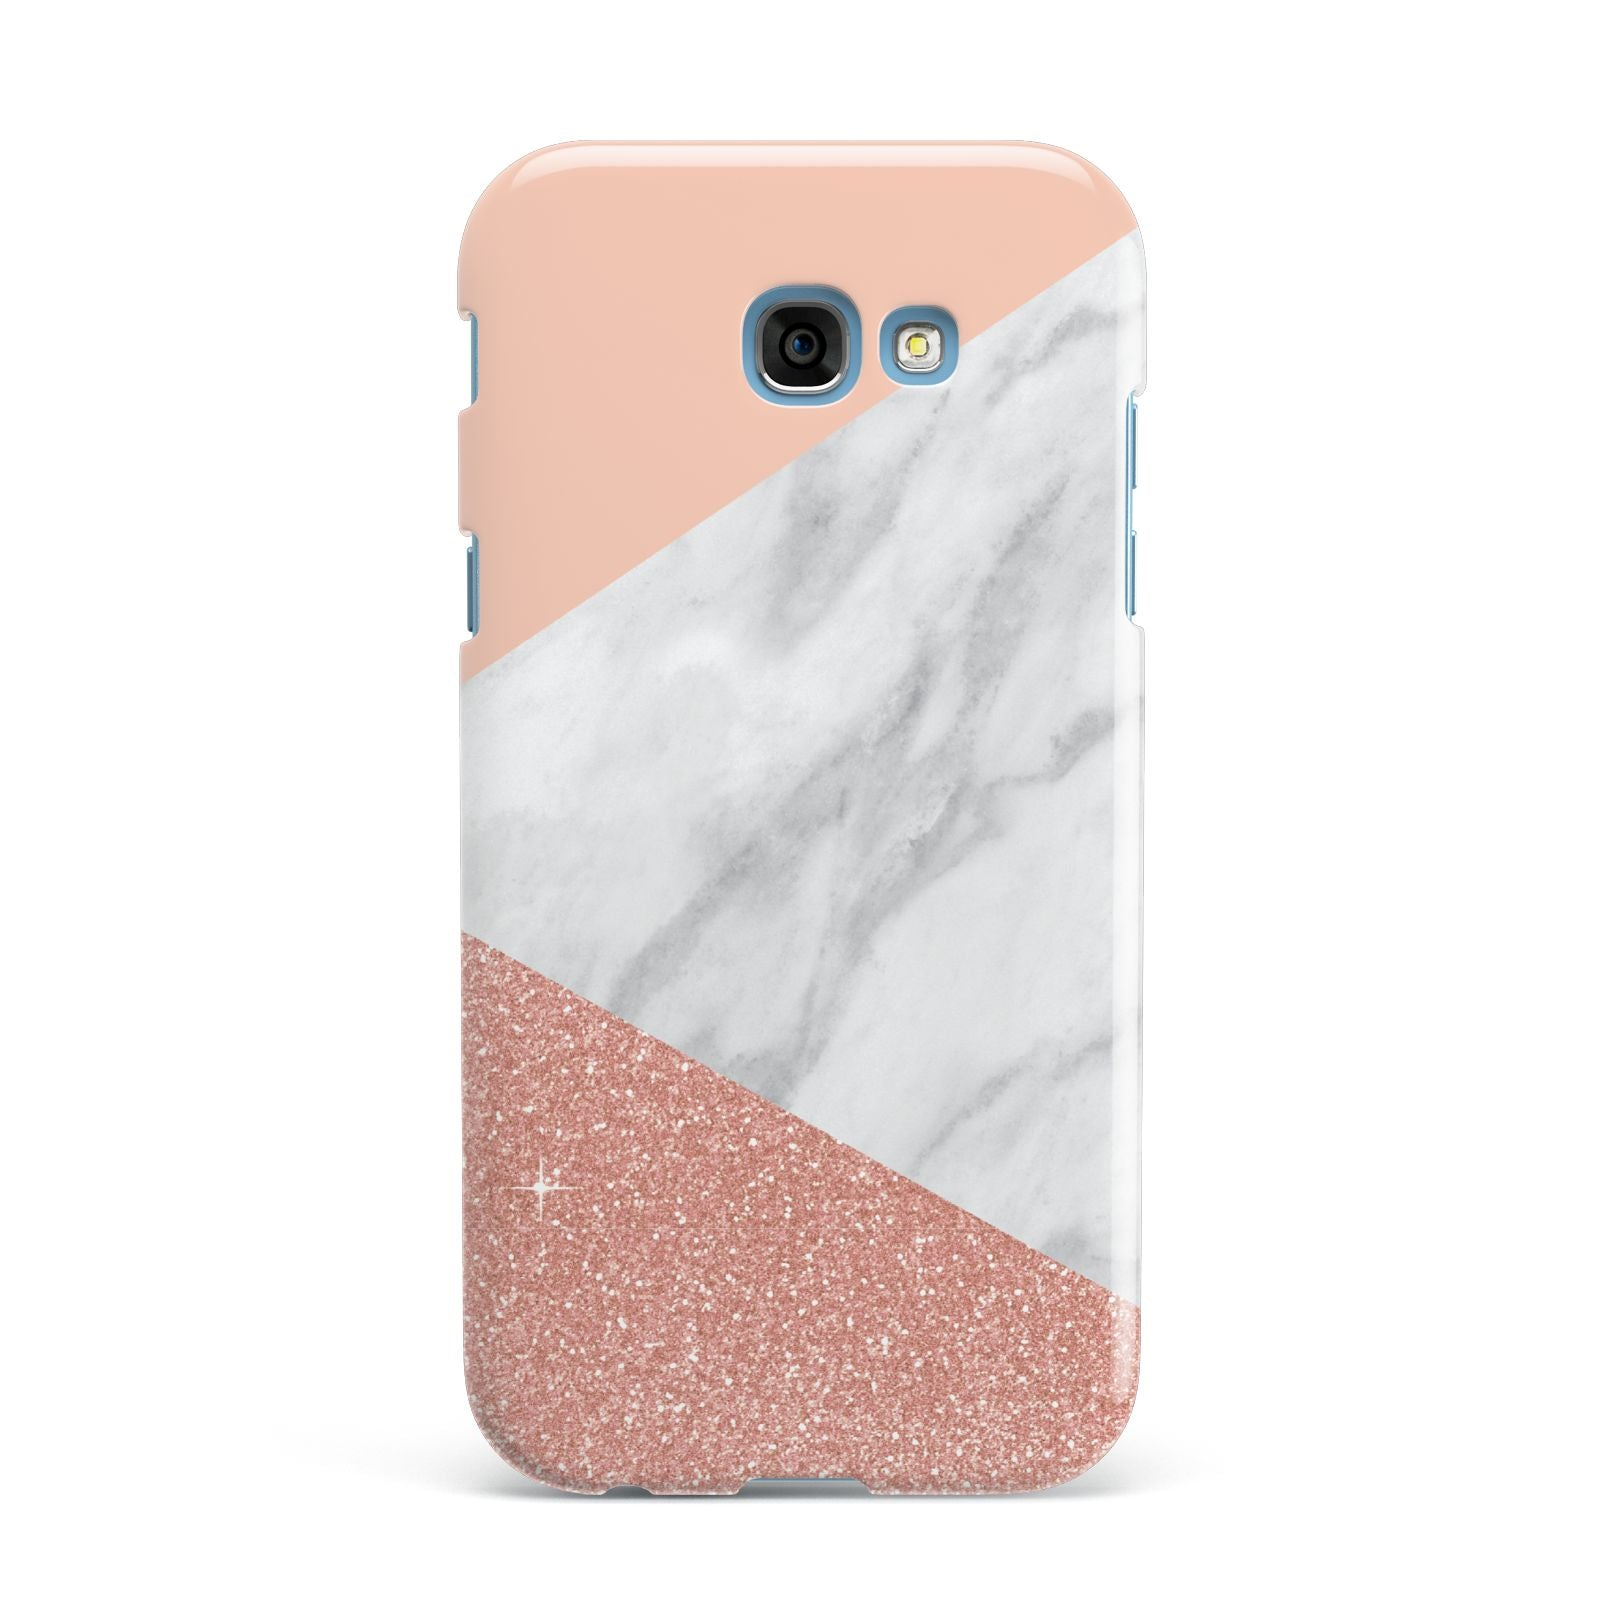 Marble White Rose Gold Samsung Galaxy A7 2017 Case